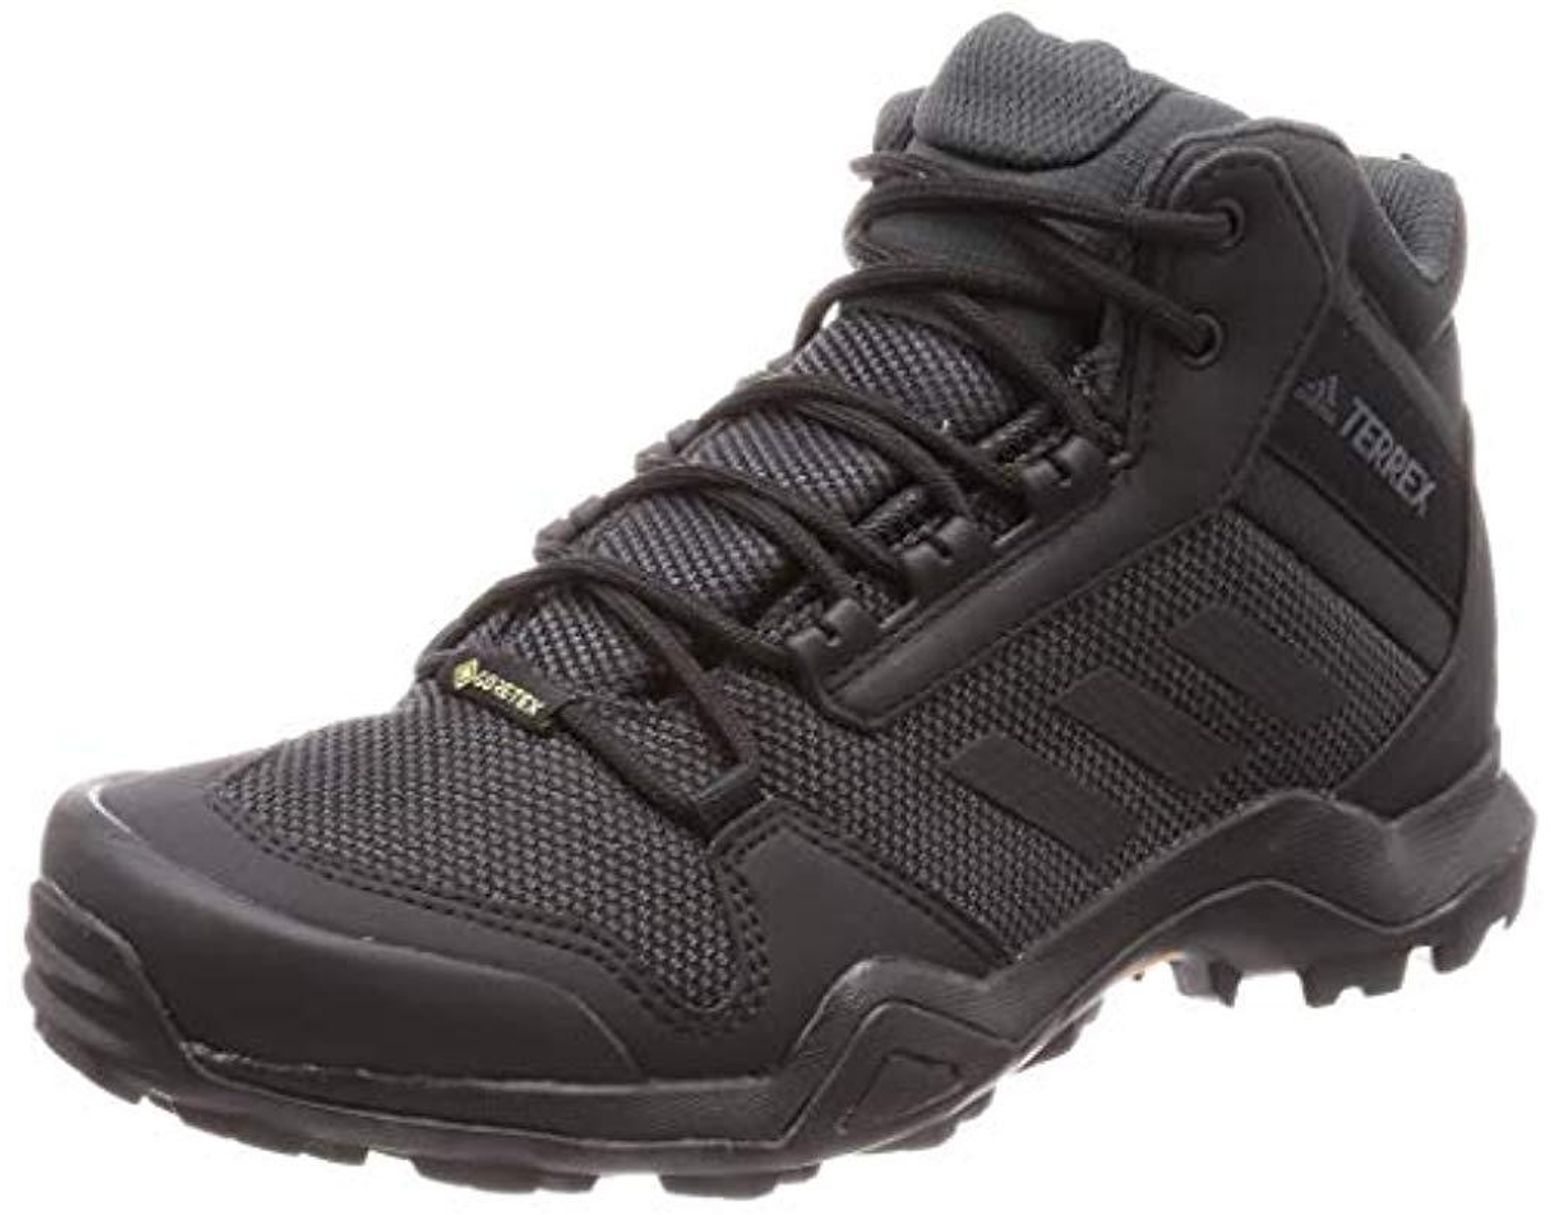 adidas Terrex Ax3 Mid Gore-tex Walking Boots in Black for ...